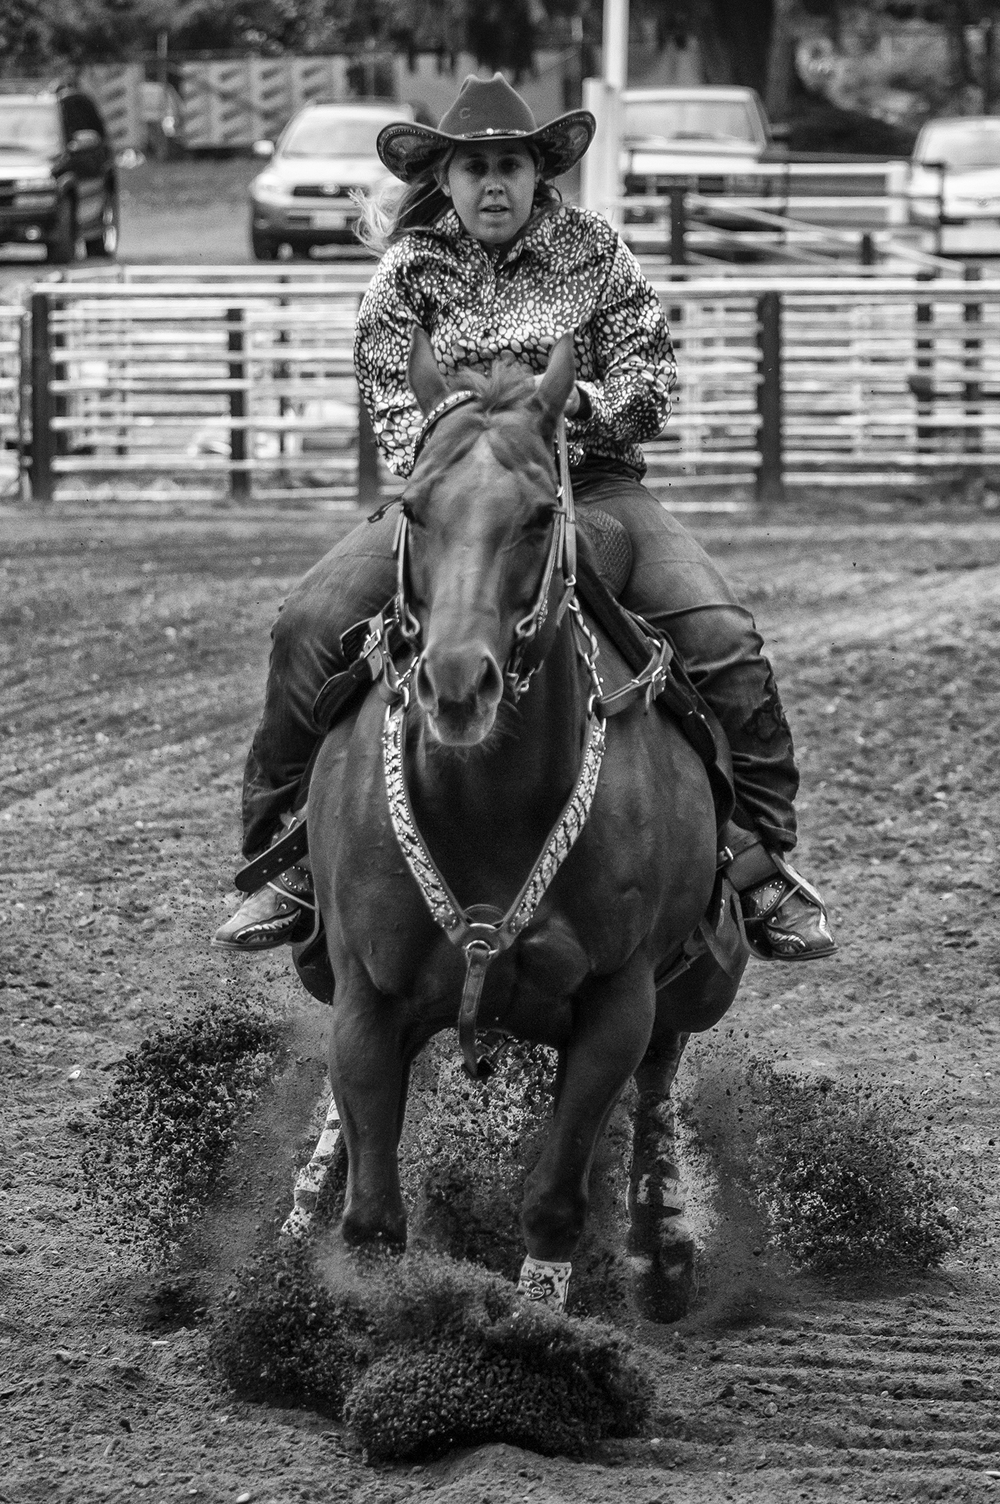 Coombs Barrel Riding-14 bw.jpg